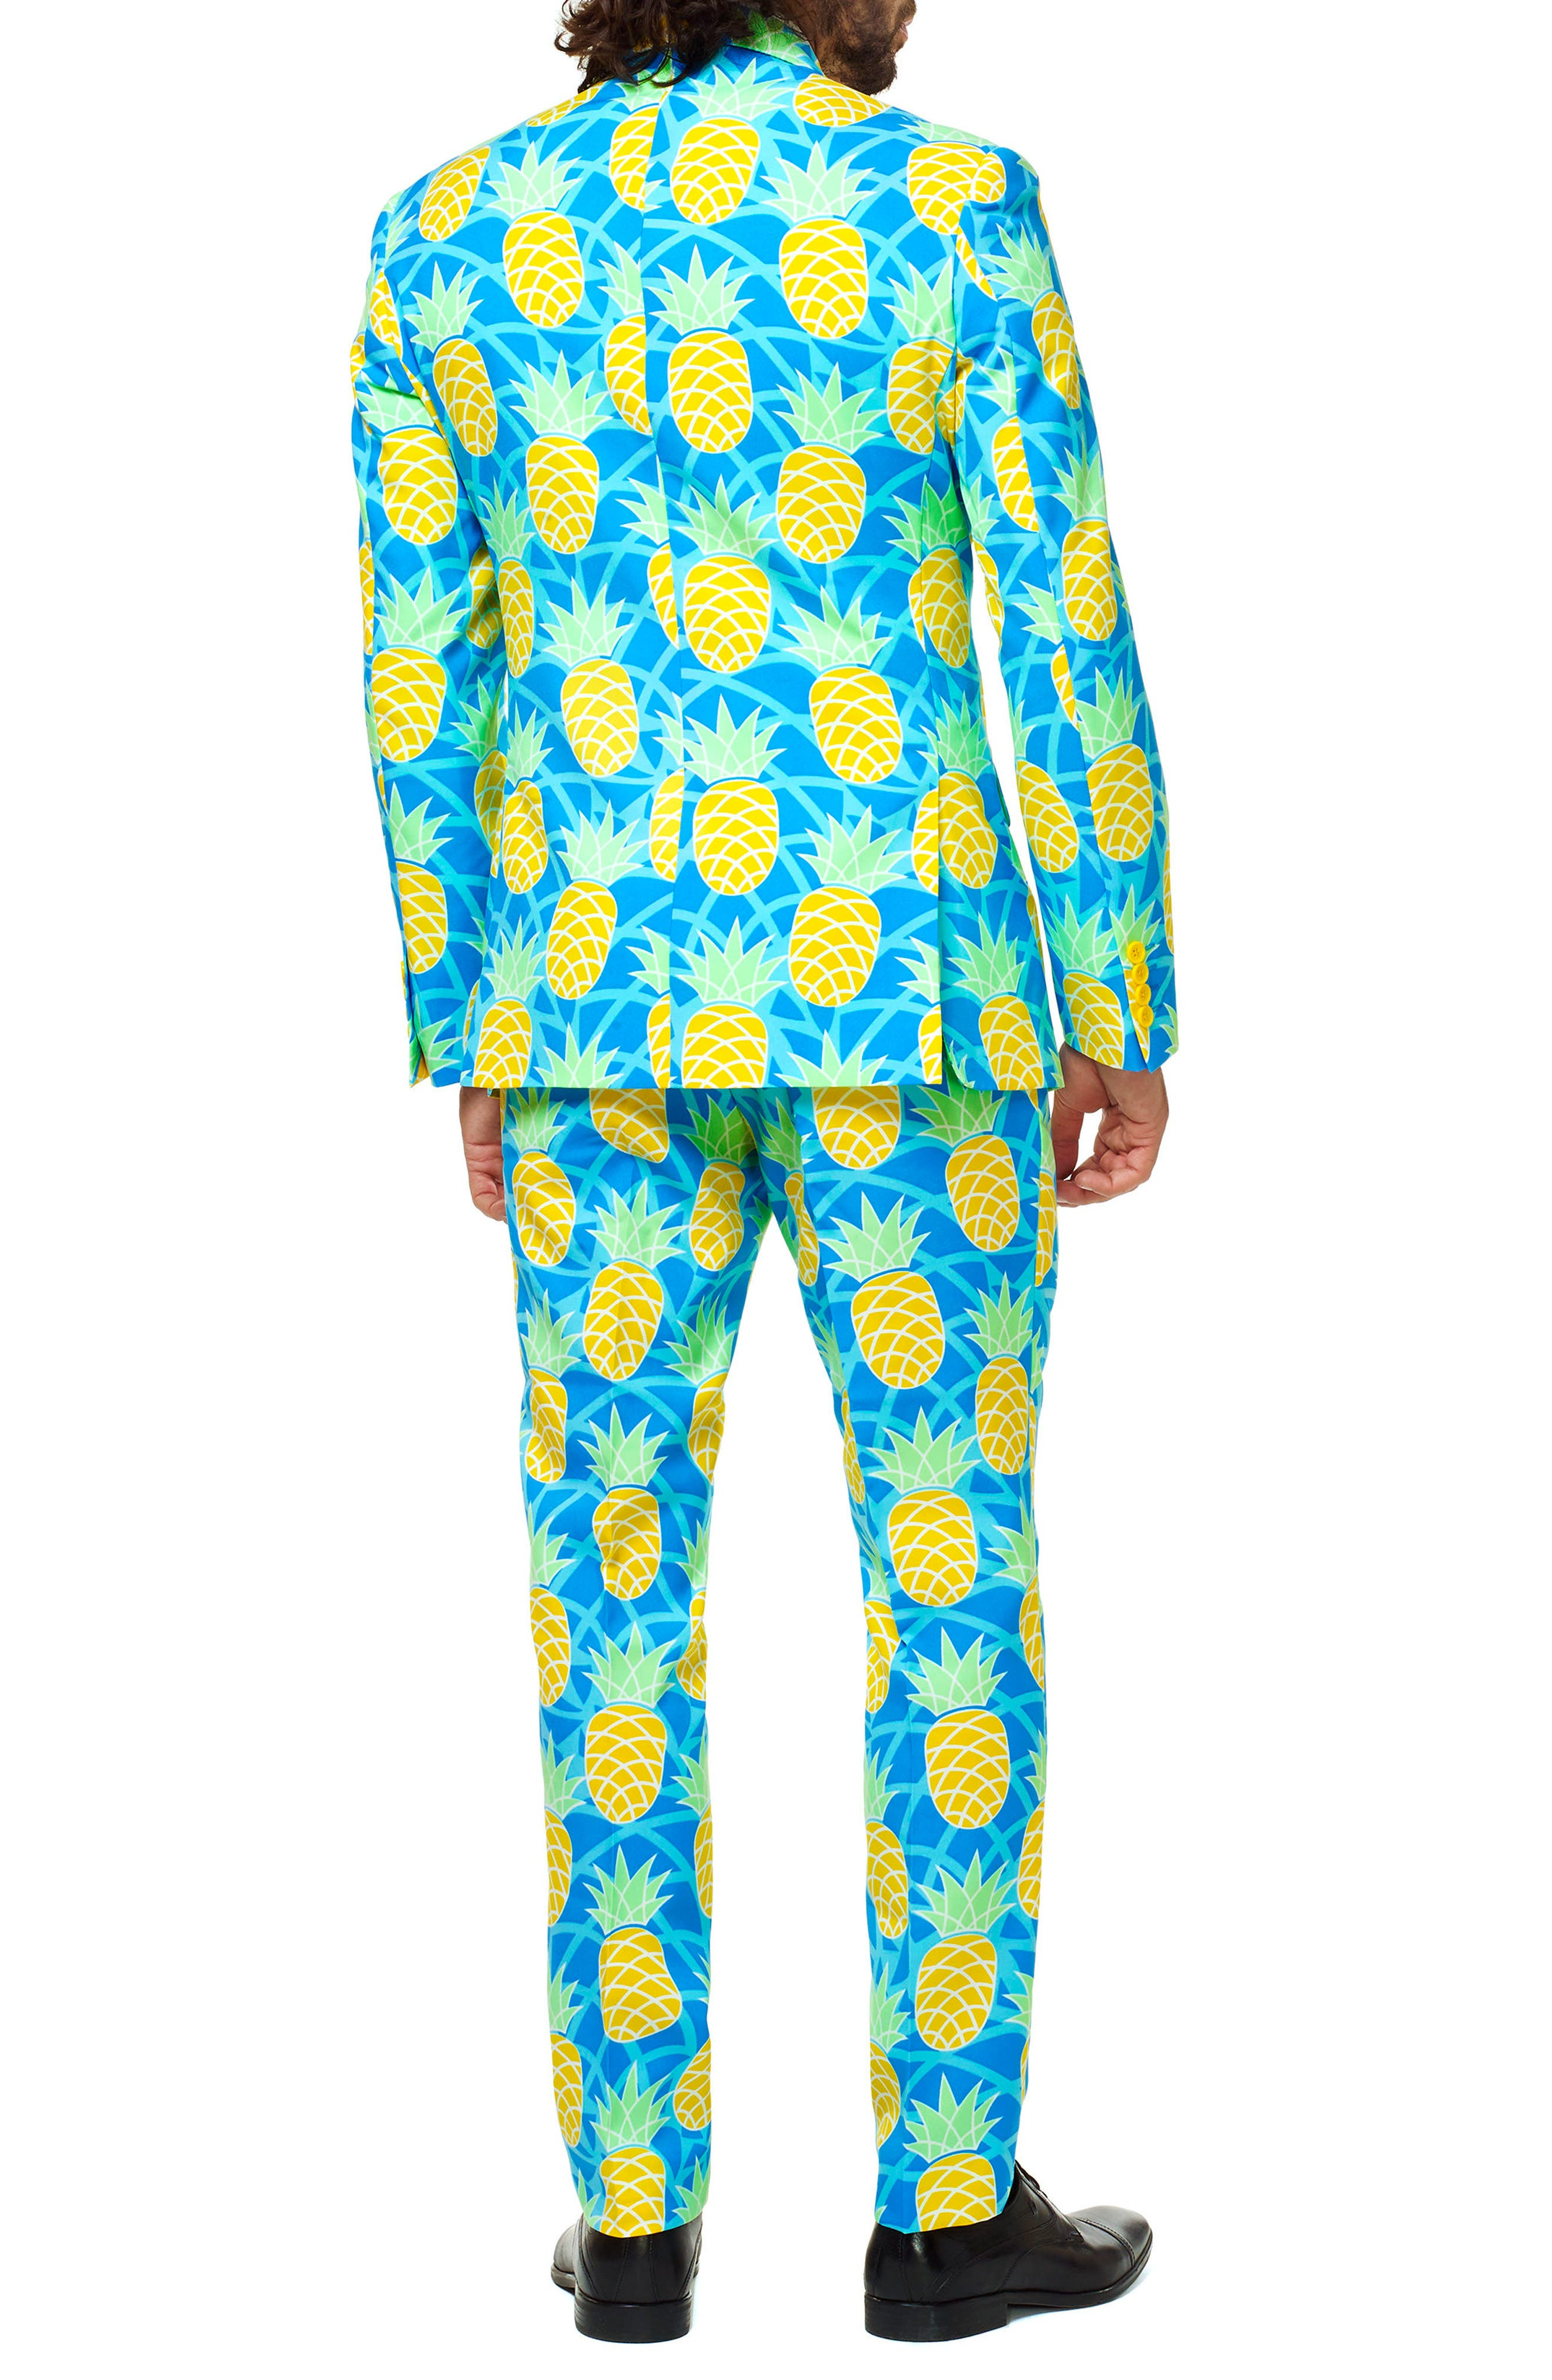 Summer Shineapple Trim Fit Two-Piece Suit with Tie,                             Alternate thumbnail 2, color,                             400